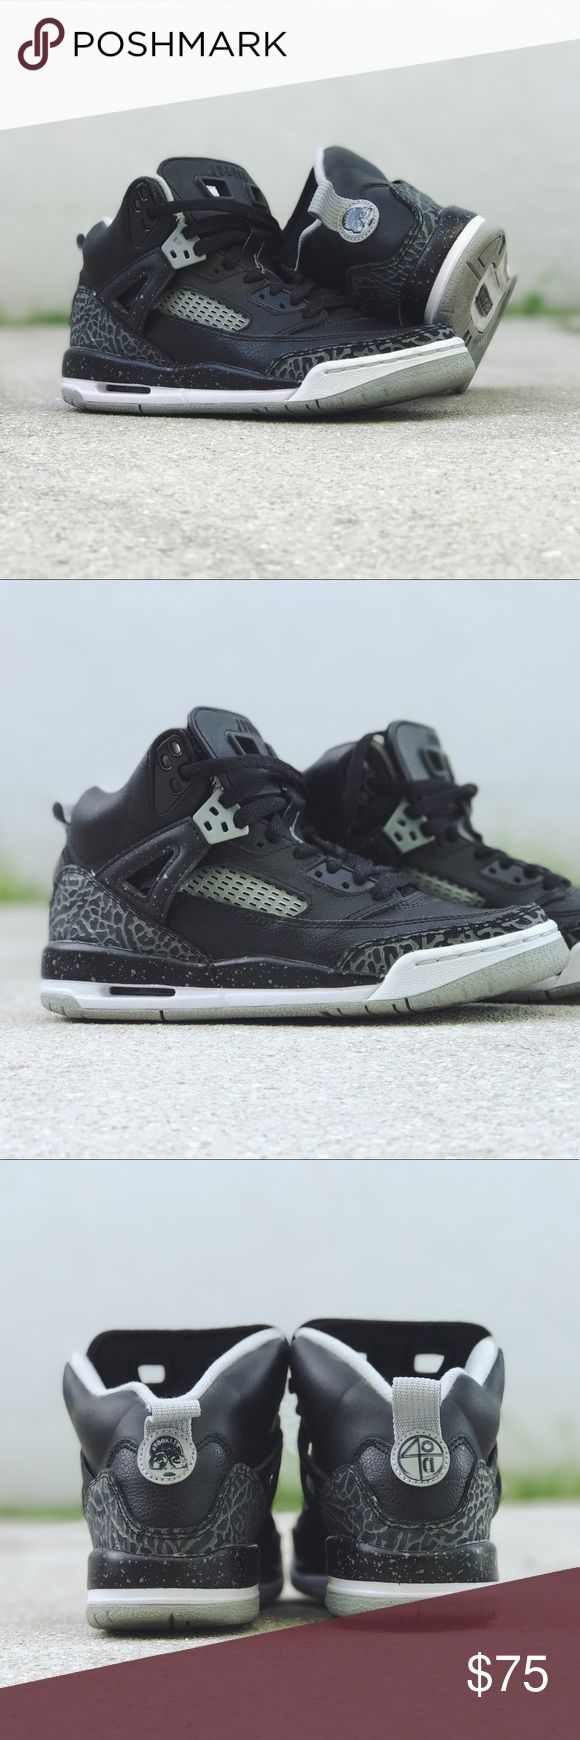 Jordan Spizike GS – Black/Cool Grey This Jordan Spizike GS size 4.5Y (Women 6) features a very dope colorway; a colorway adult Spizike lovers will definitely want.  Worn a couple times so it does have MINIMAL wear. They are a 9 out of 10. These shoes do not come with original box. Jordan Shoes Sneakers